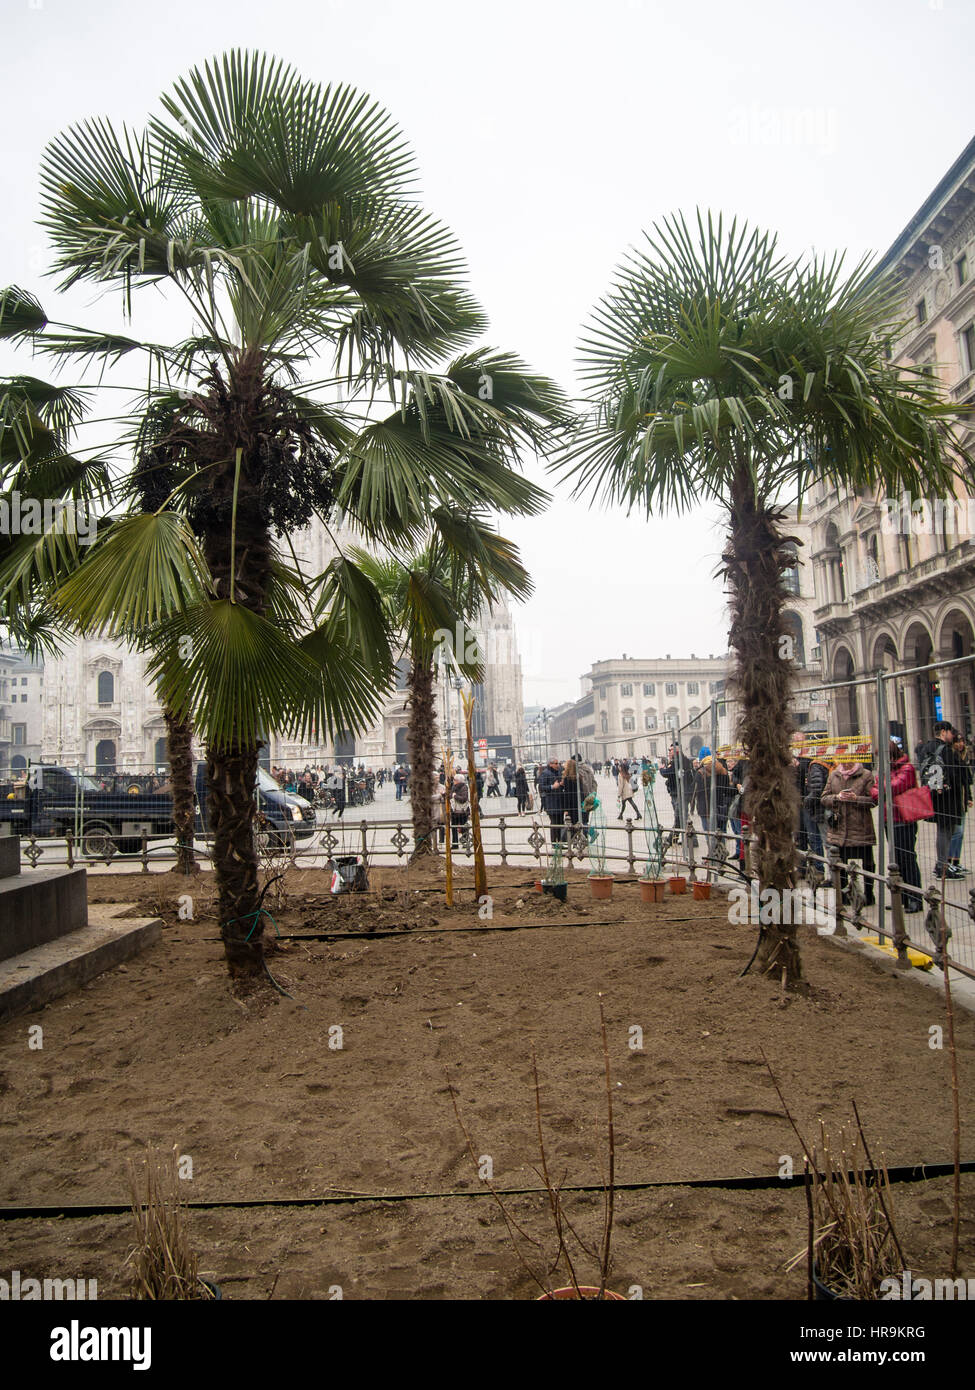 Starbucks palms in Milan, and taxi drivers protesting against uber inPiazza Duomo, during Milano Fashion Week - Stock Photo